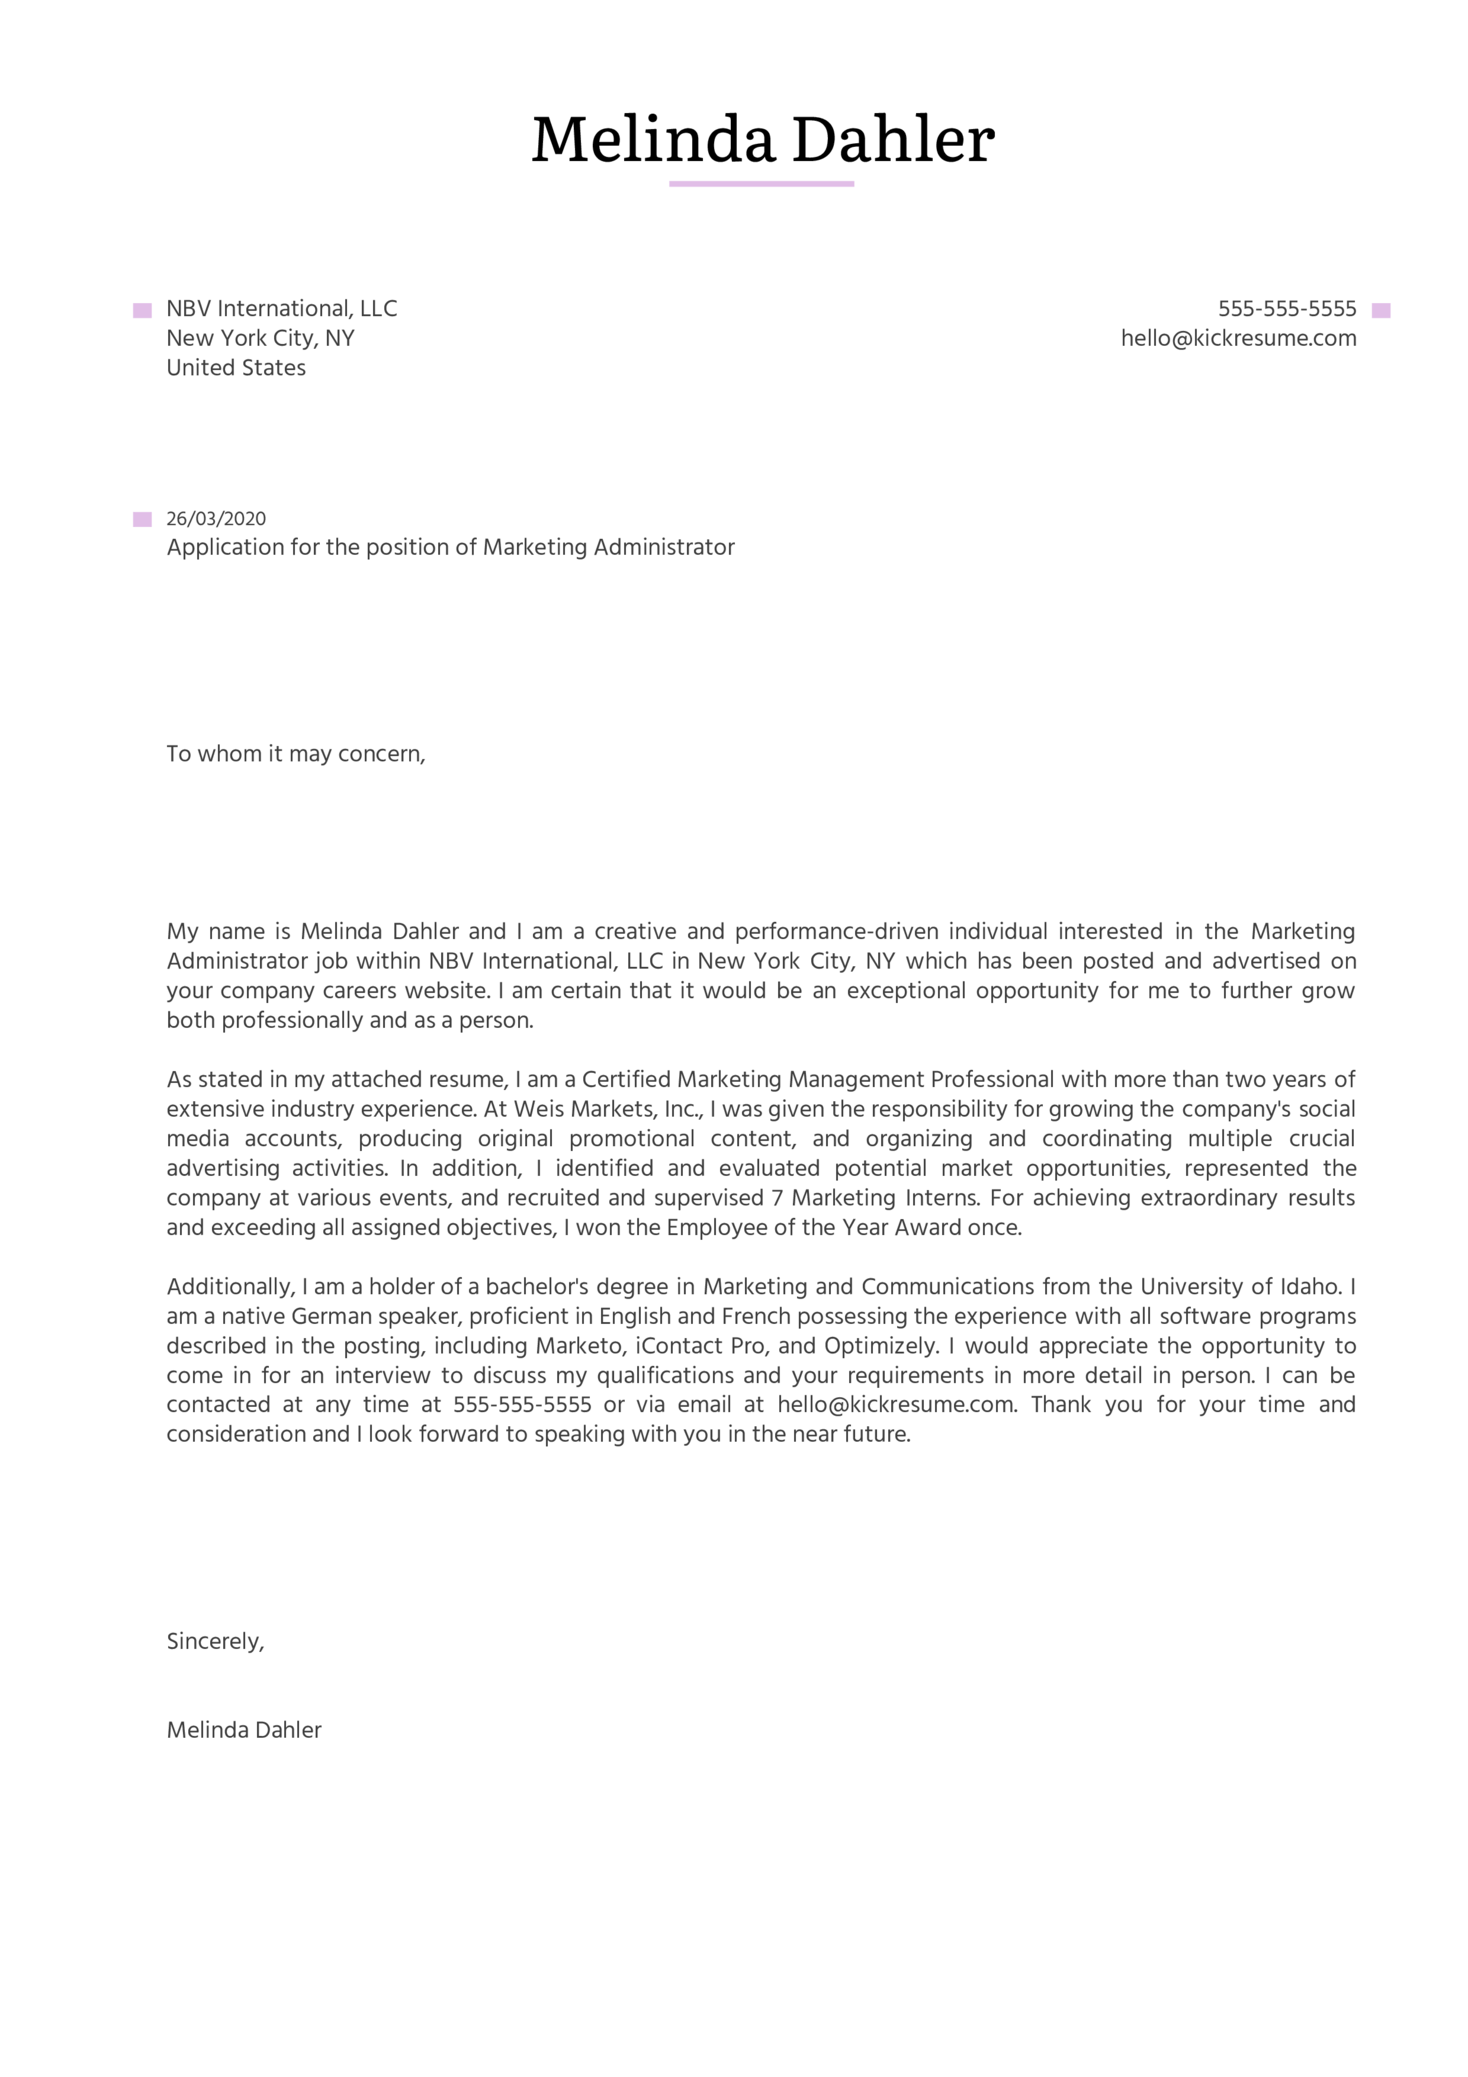 Marketing Administrator Cover Letter Example